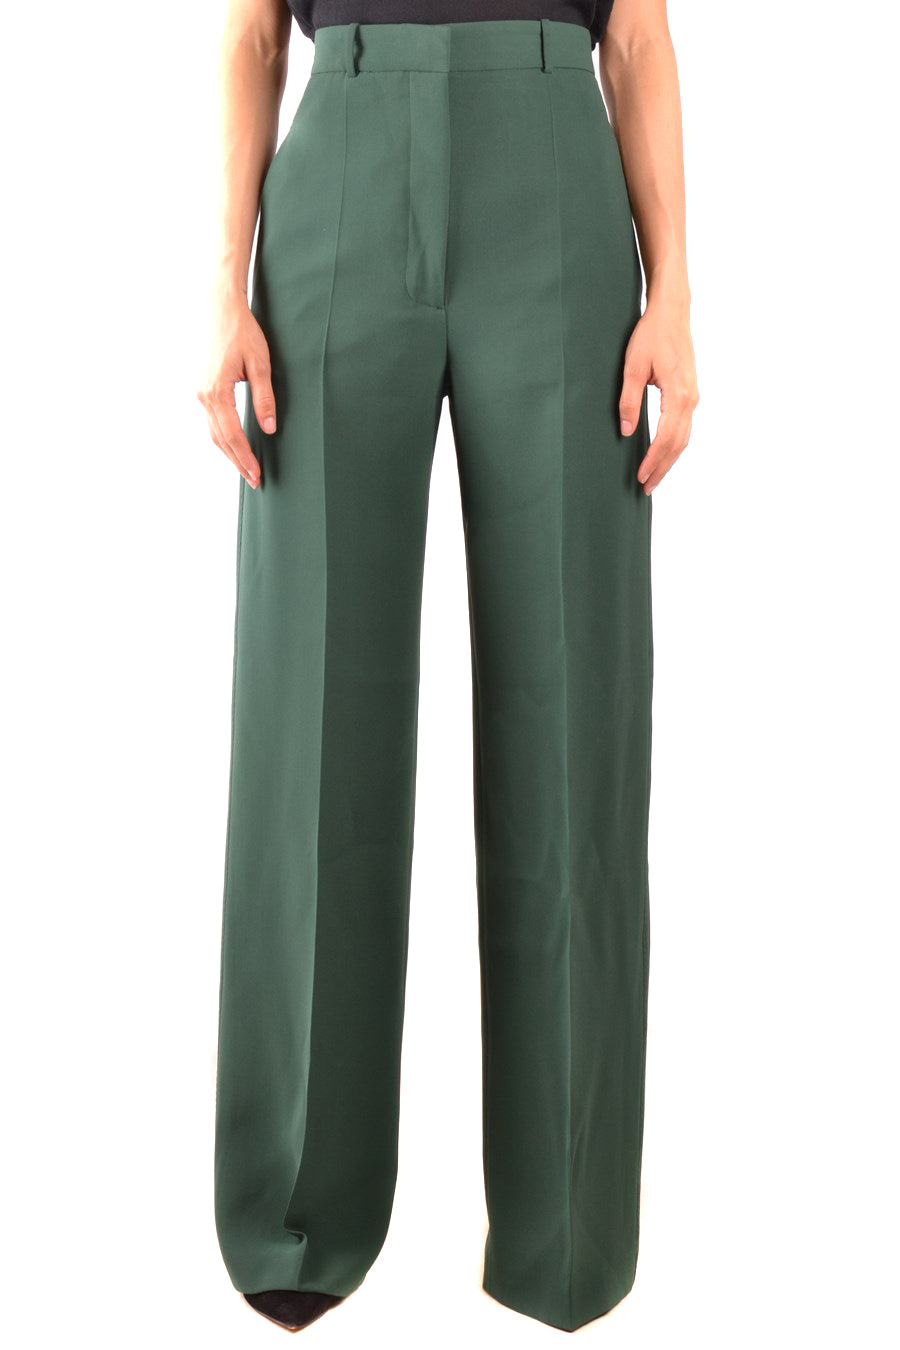 Trousers Burberry-Trousers - WOMAN-38-Product Details Terms: New With LabelYear: 2018Main Color: GreenGender: WomanMade In: RomaniaManufacturer Part Number: 8001948 A1472Size: ItSeason: Fall / WinterClothing Type: TrousersComposition: Wool 12%, Silk 88%-Keyomi-Sook